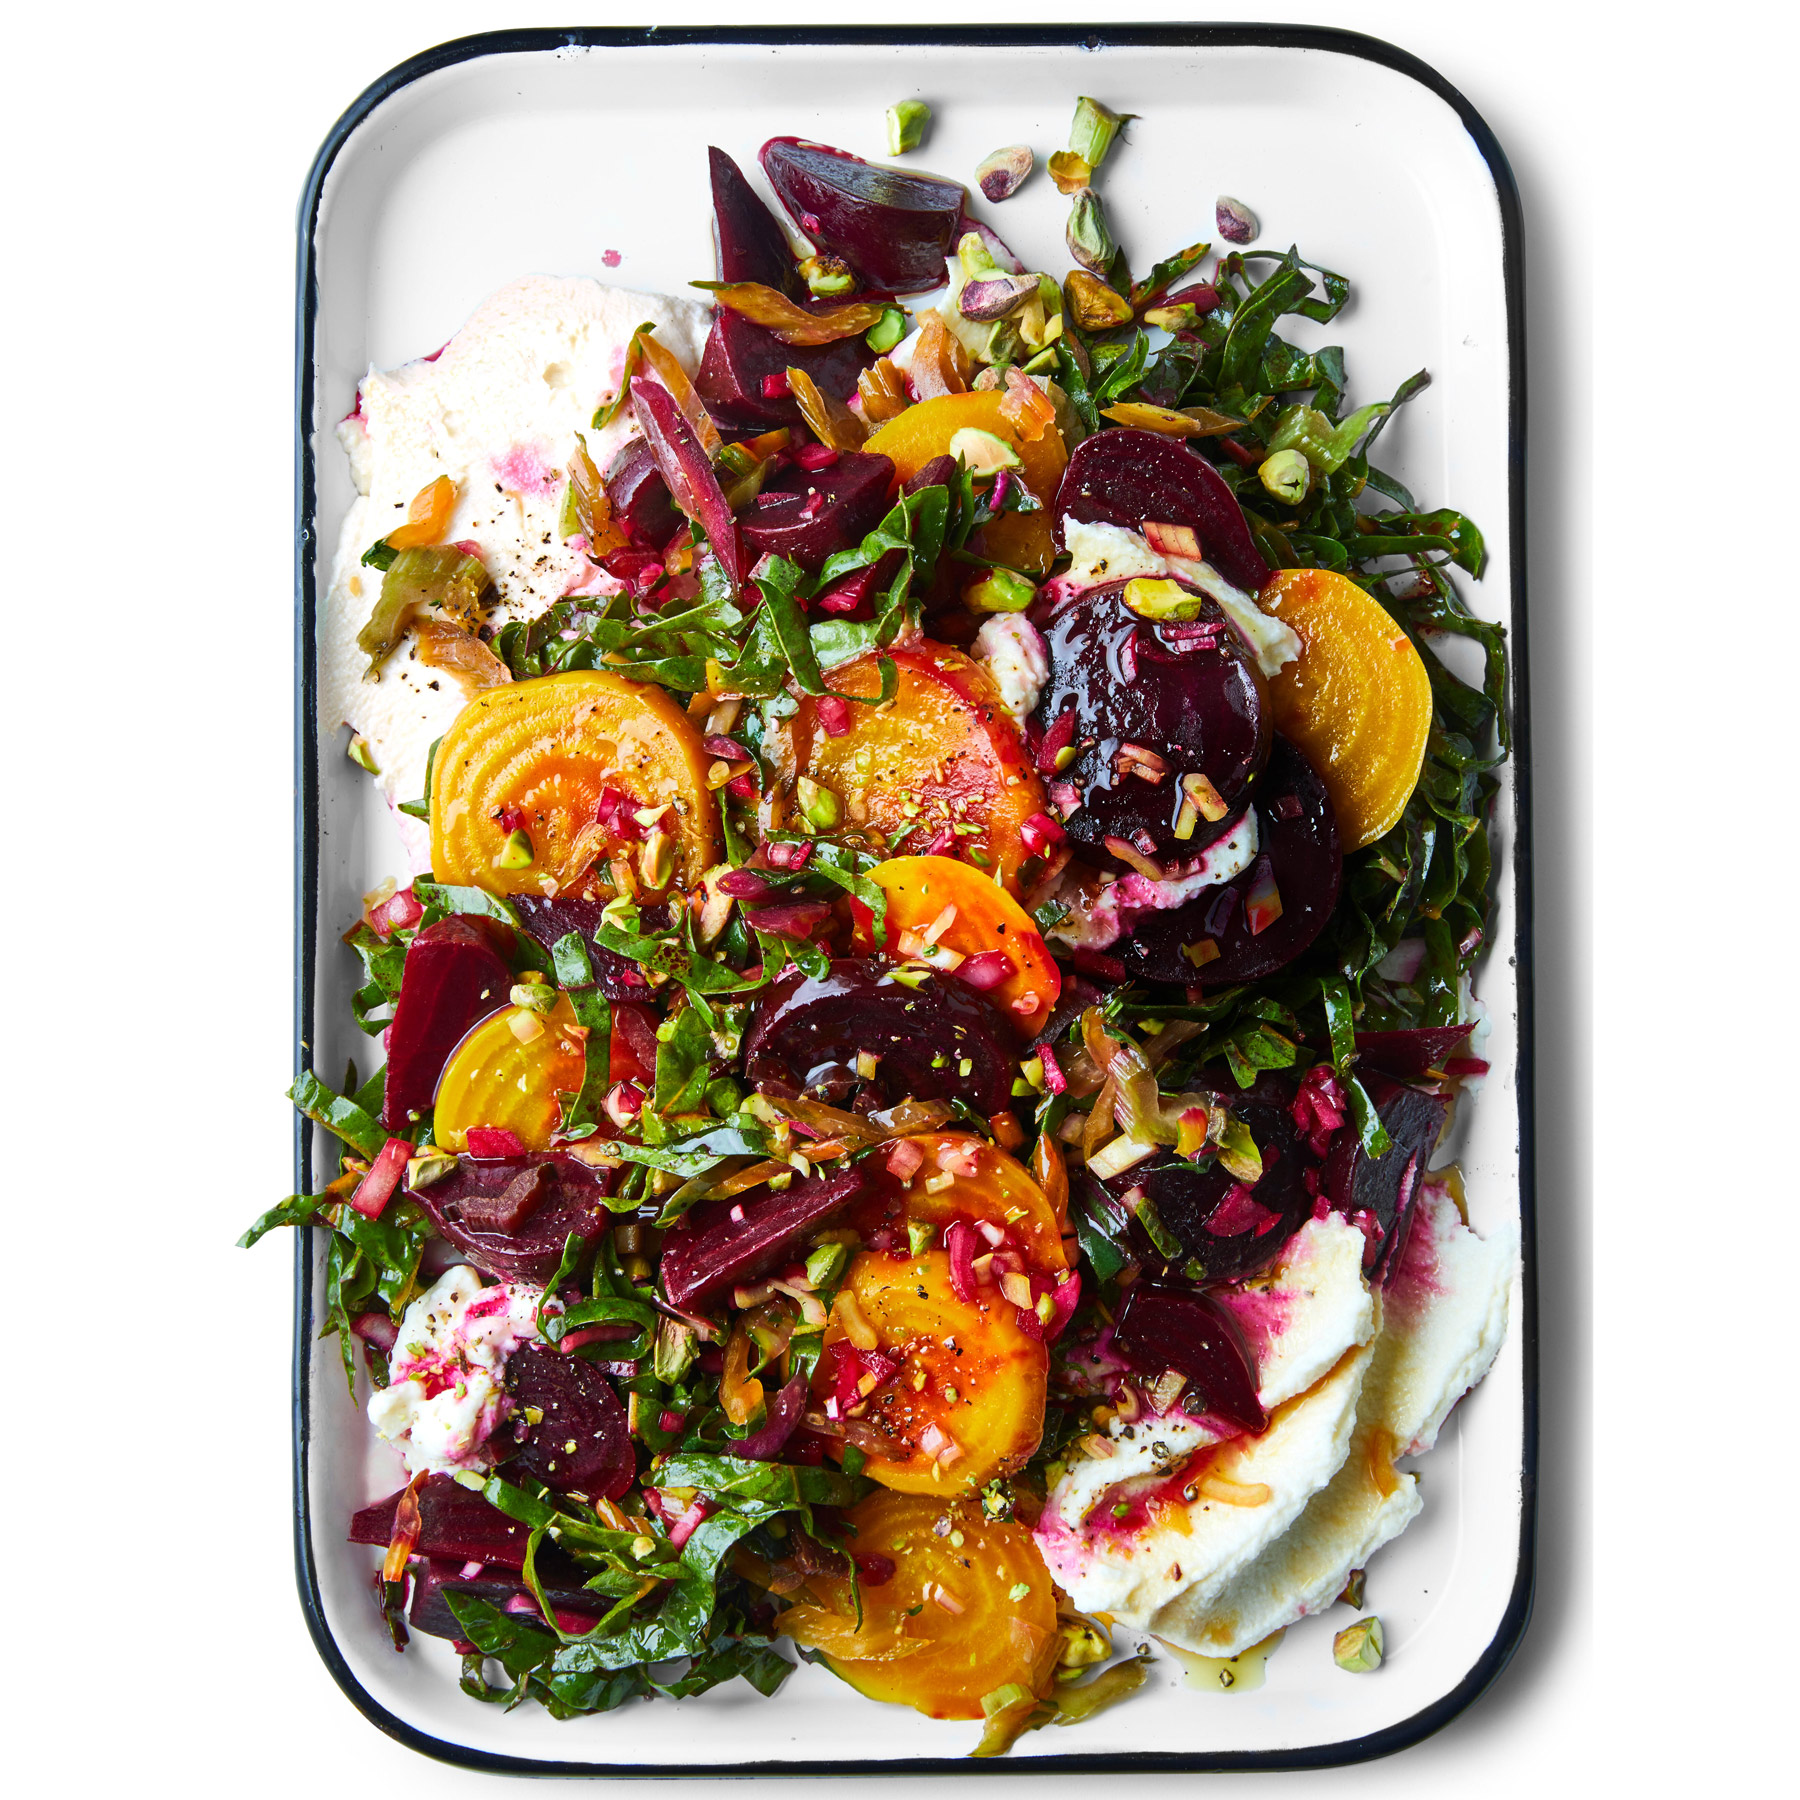 Feel the Beet Salad with Ricotta